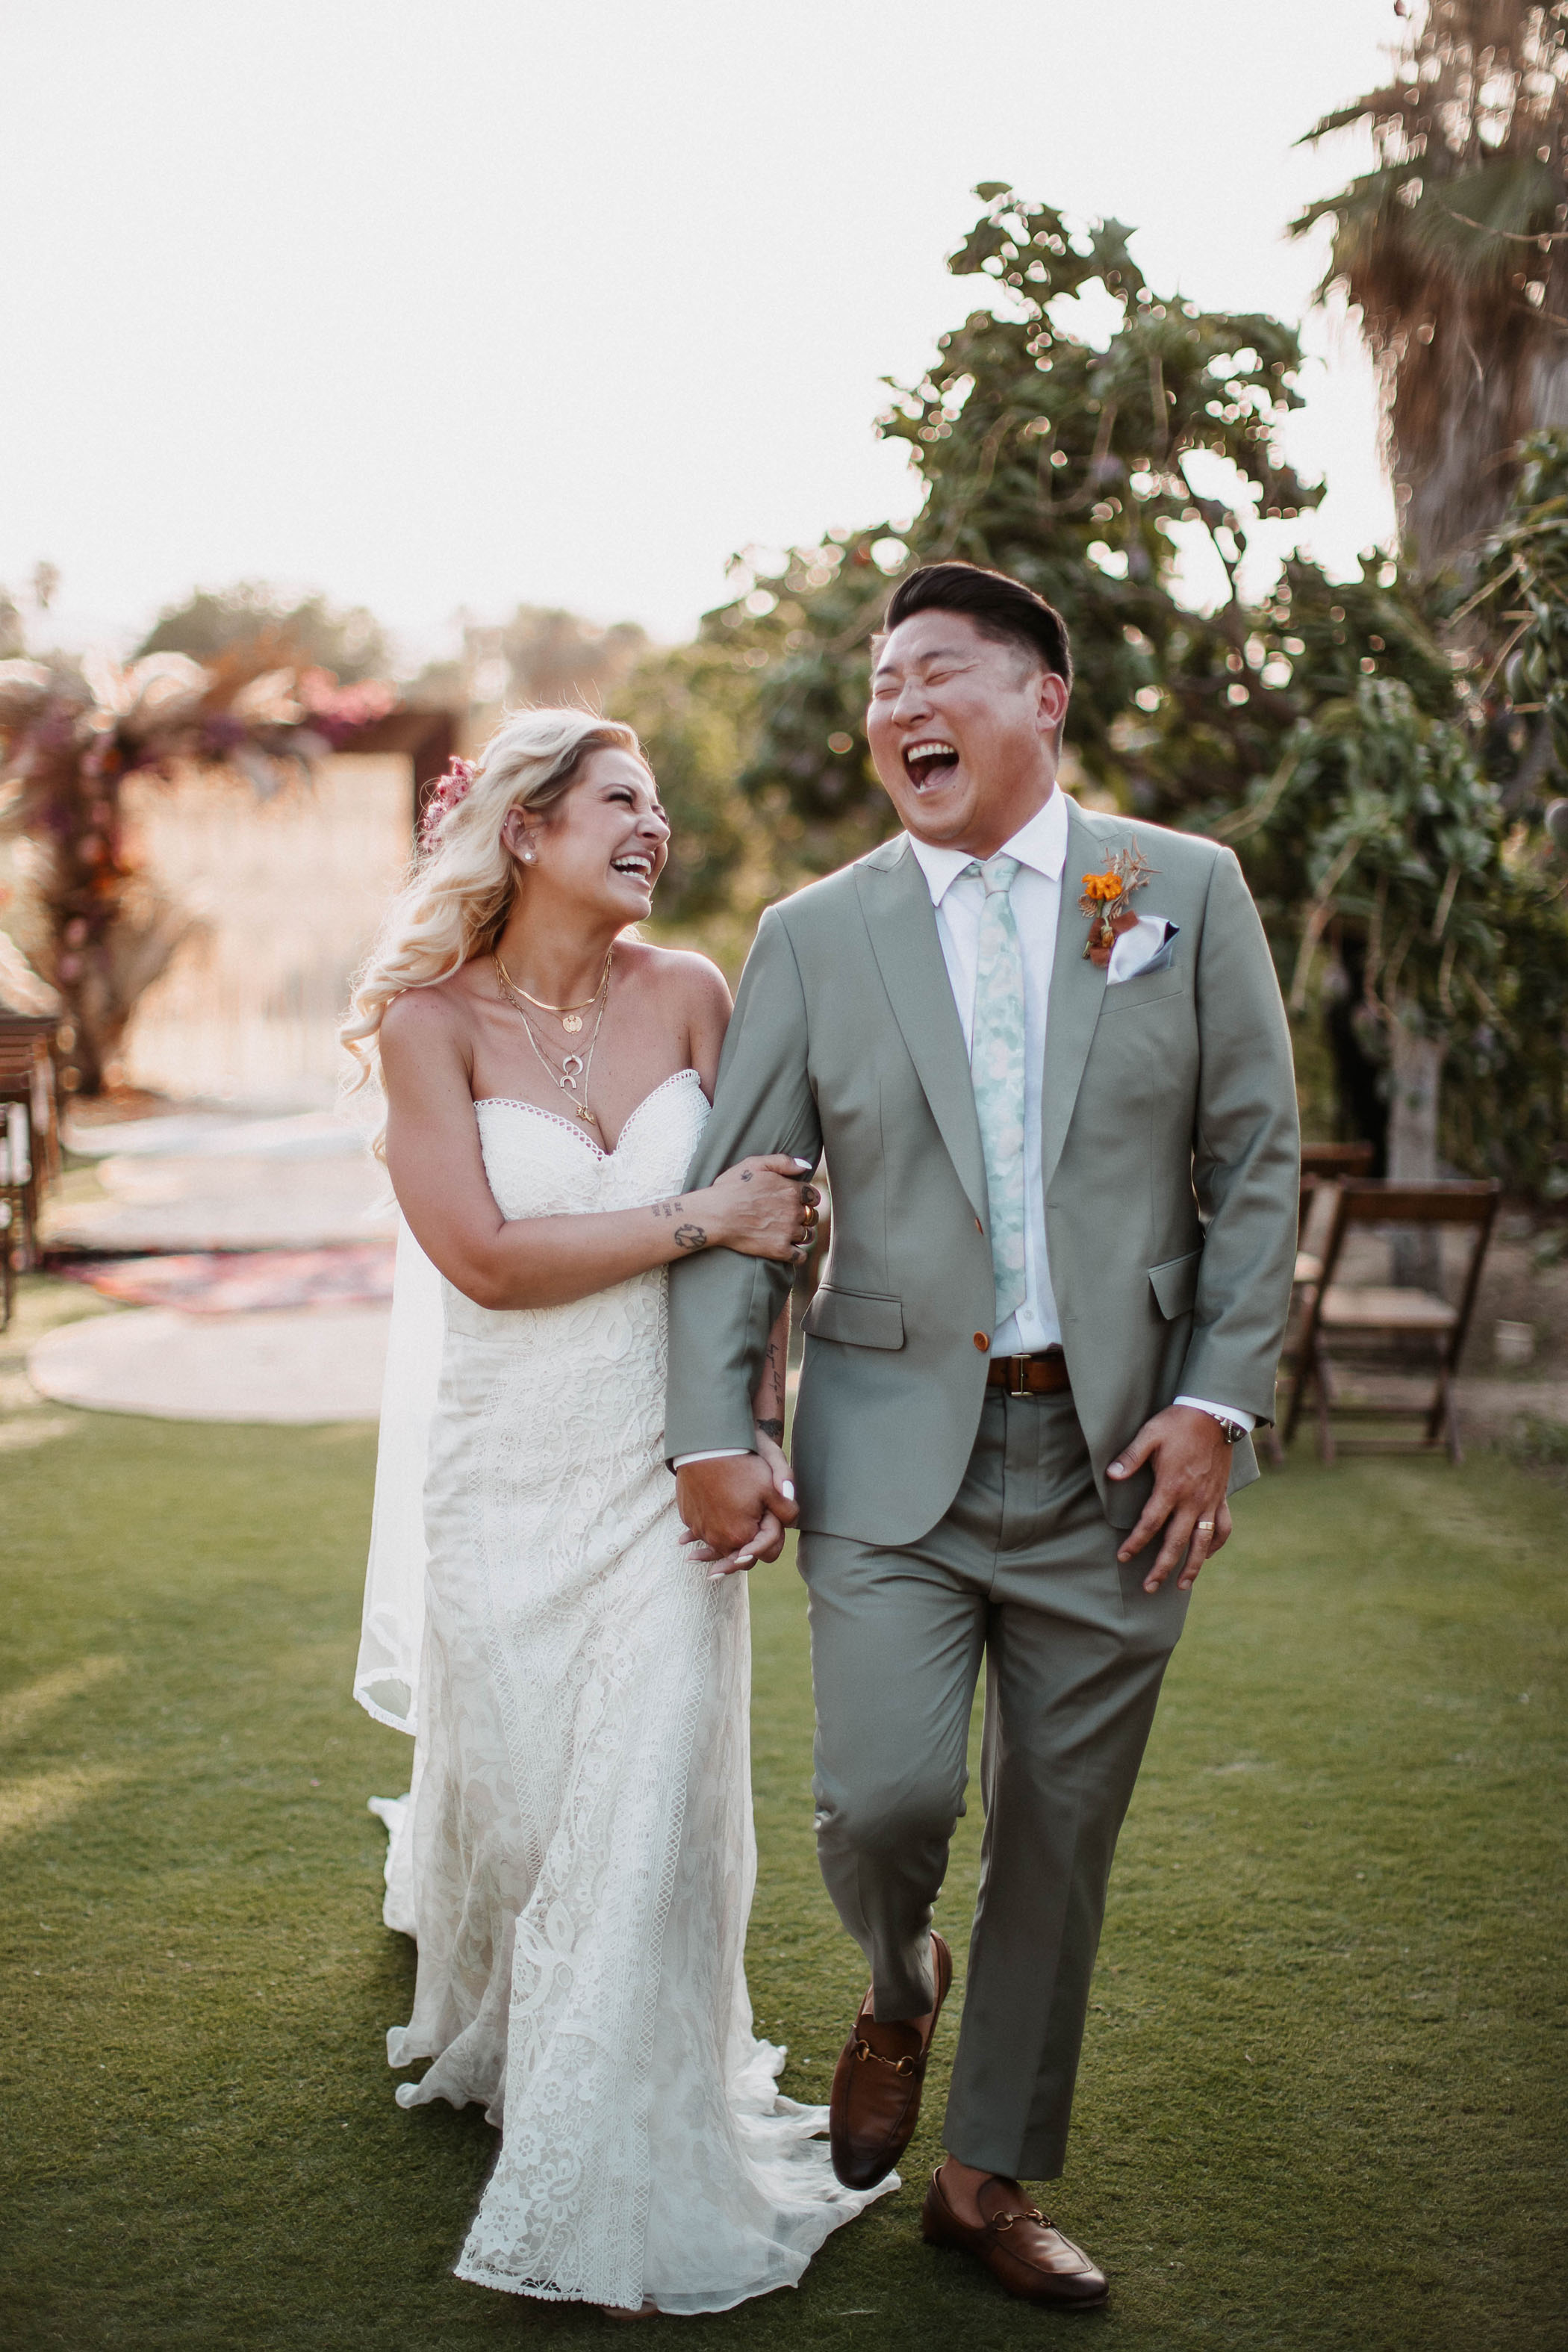 Husband and wife smiling and laughing after saying their wedding vows